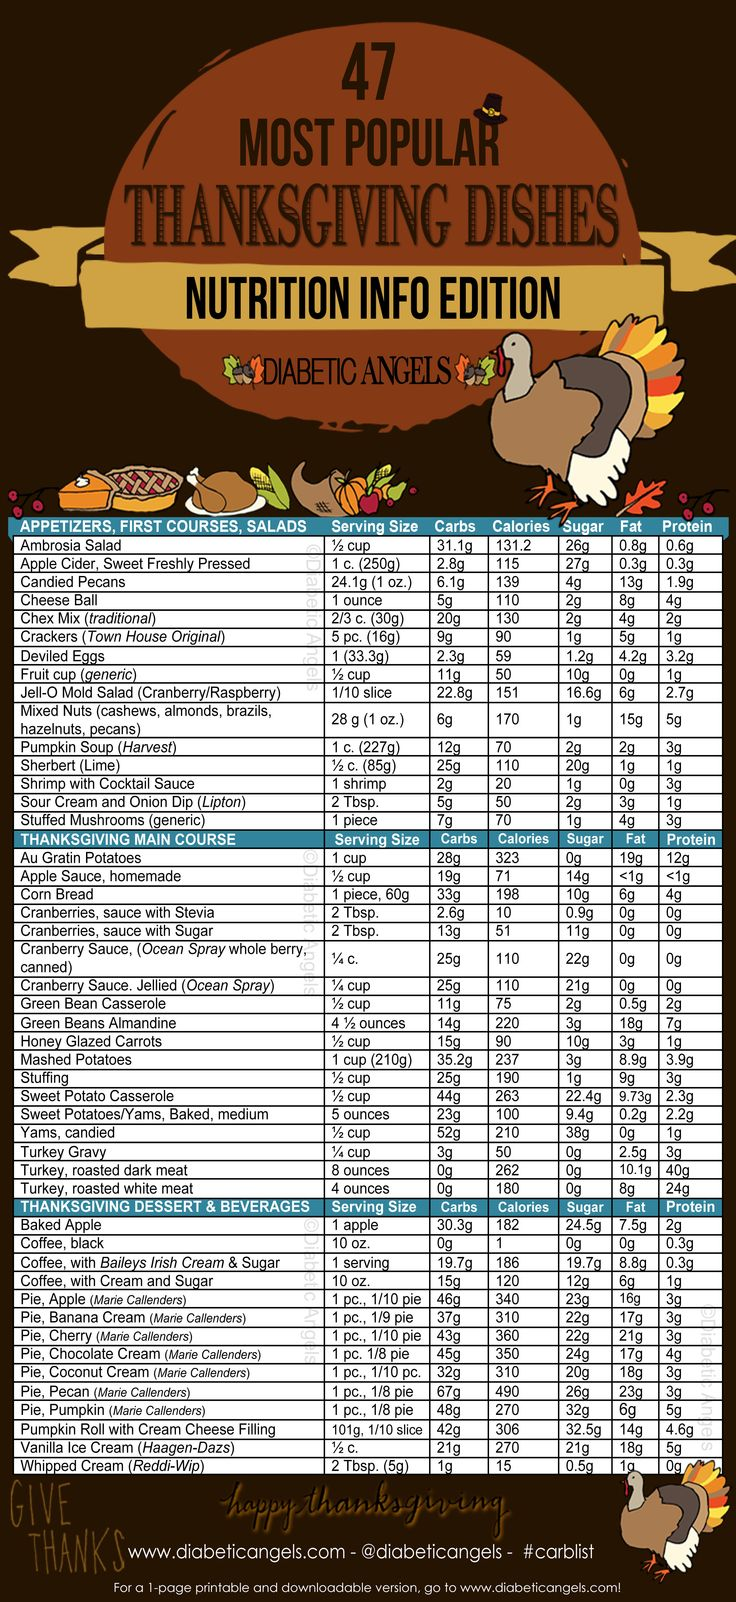 Popular Thanksgiving Dishes: Nutrition Info Edition